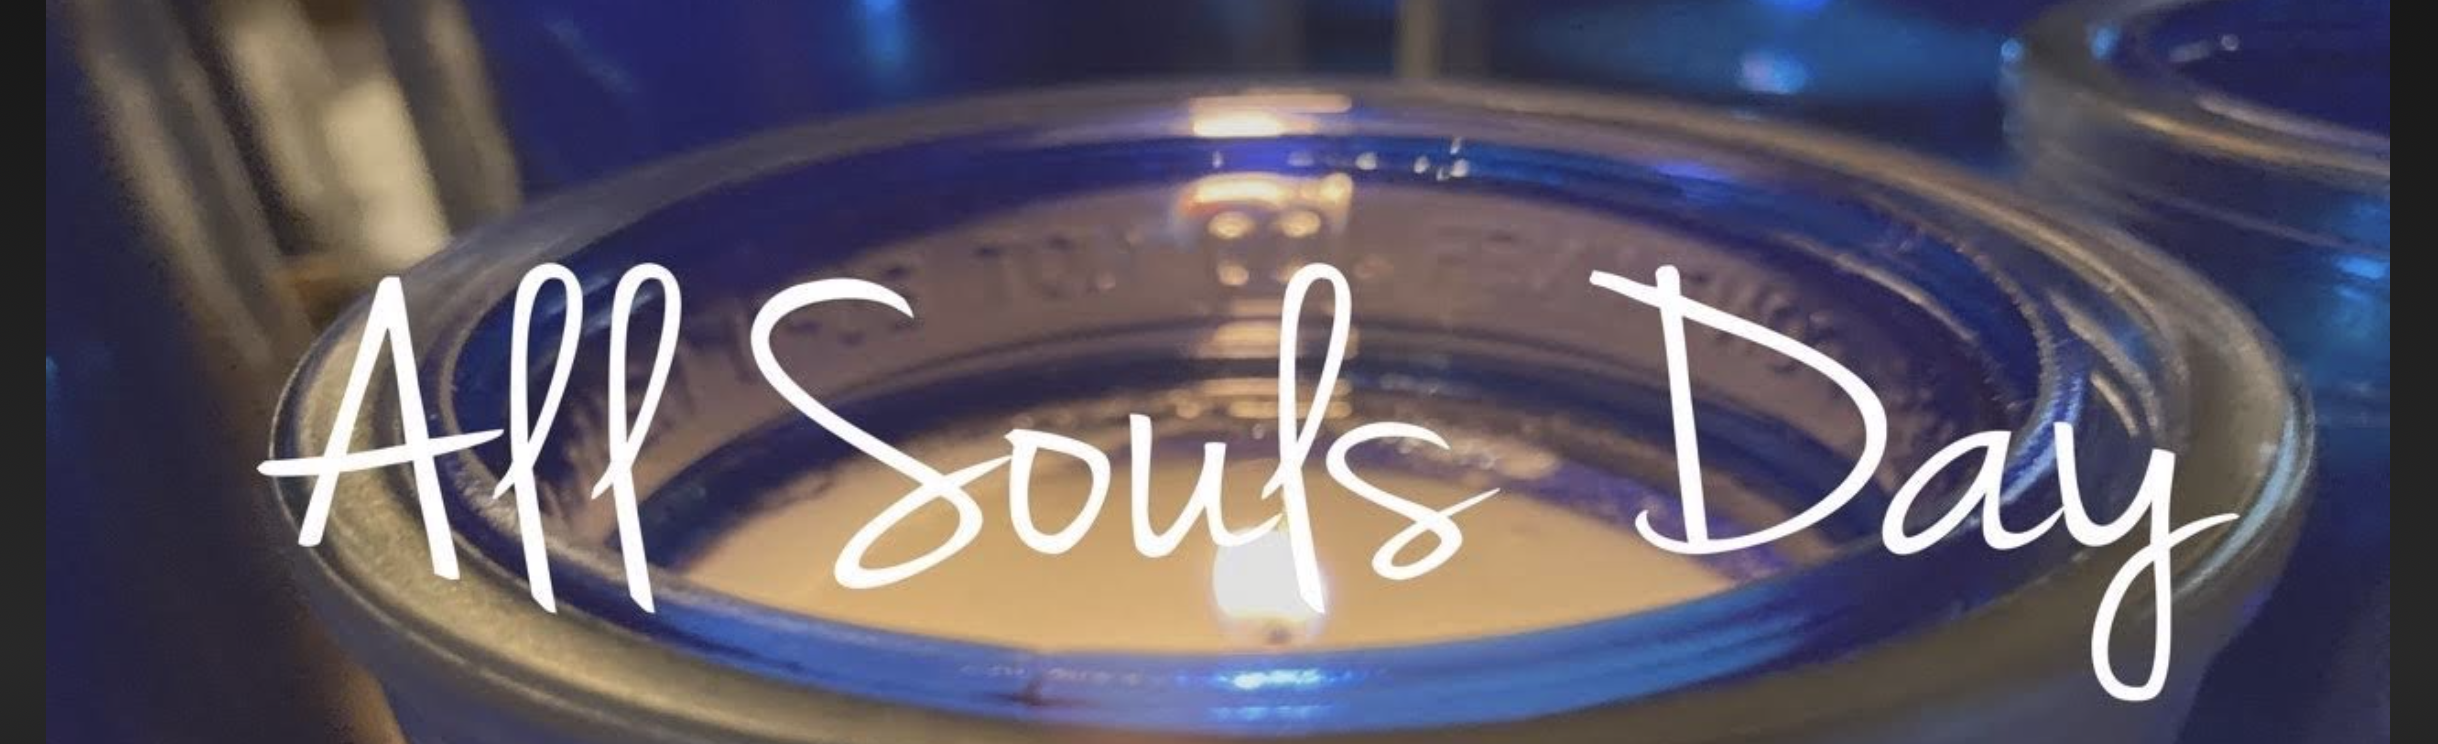 click here to order your memorial candle for all soul's day